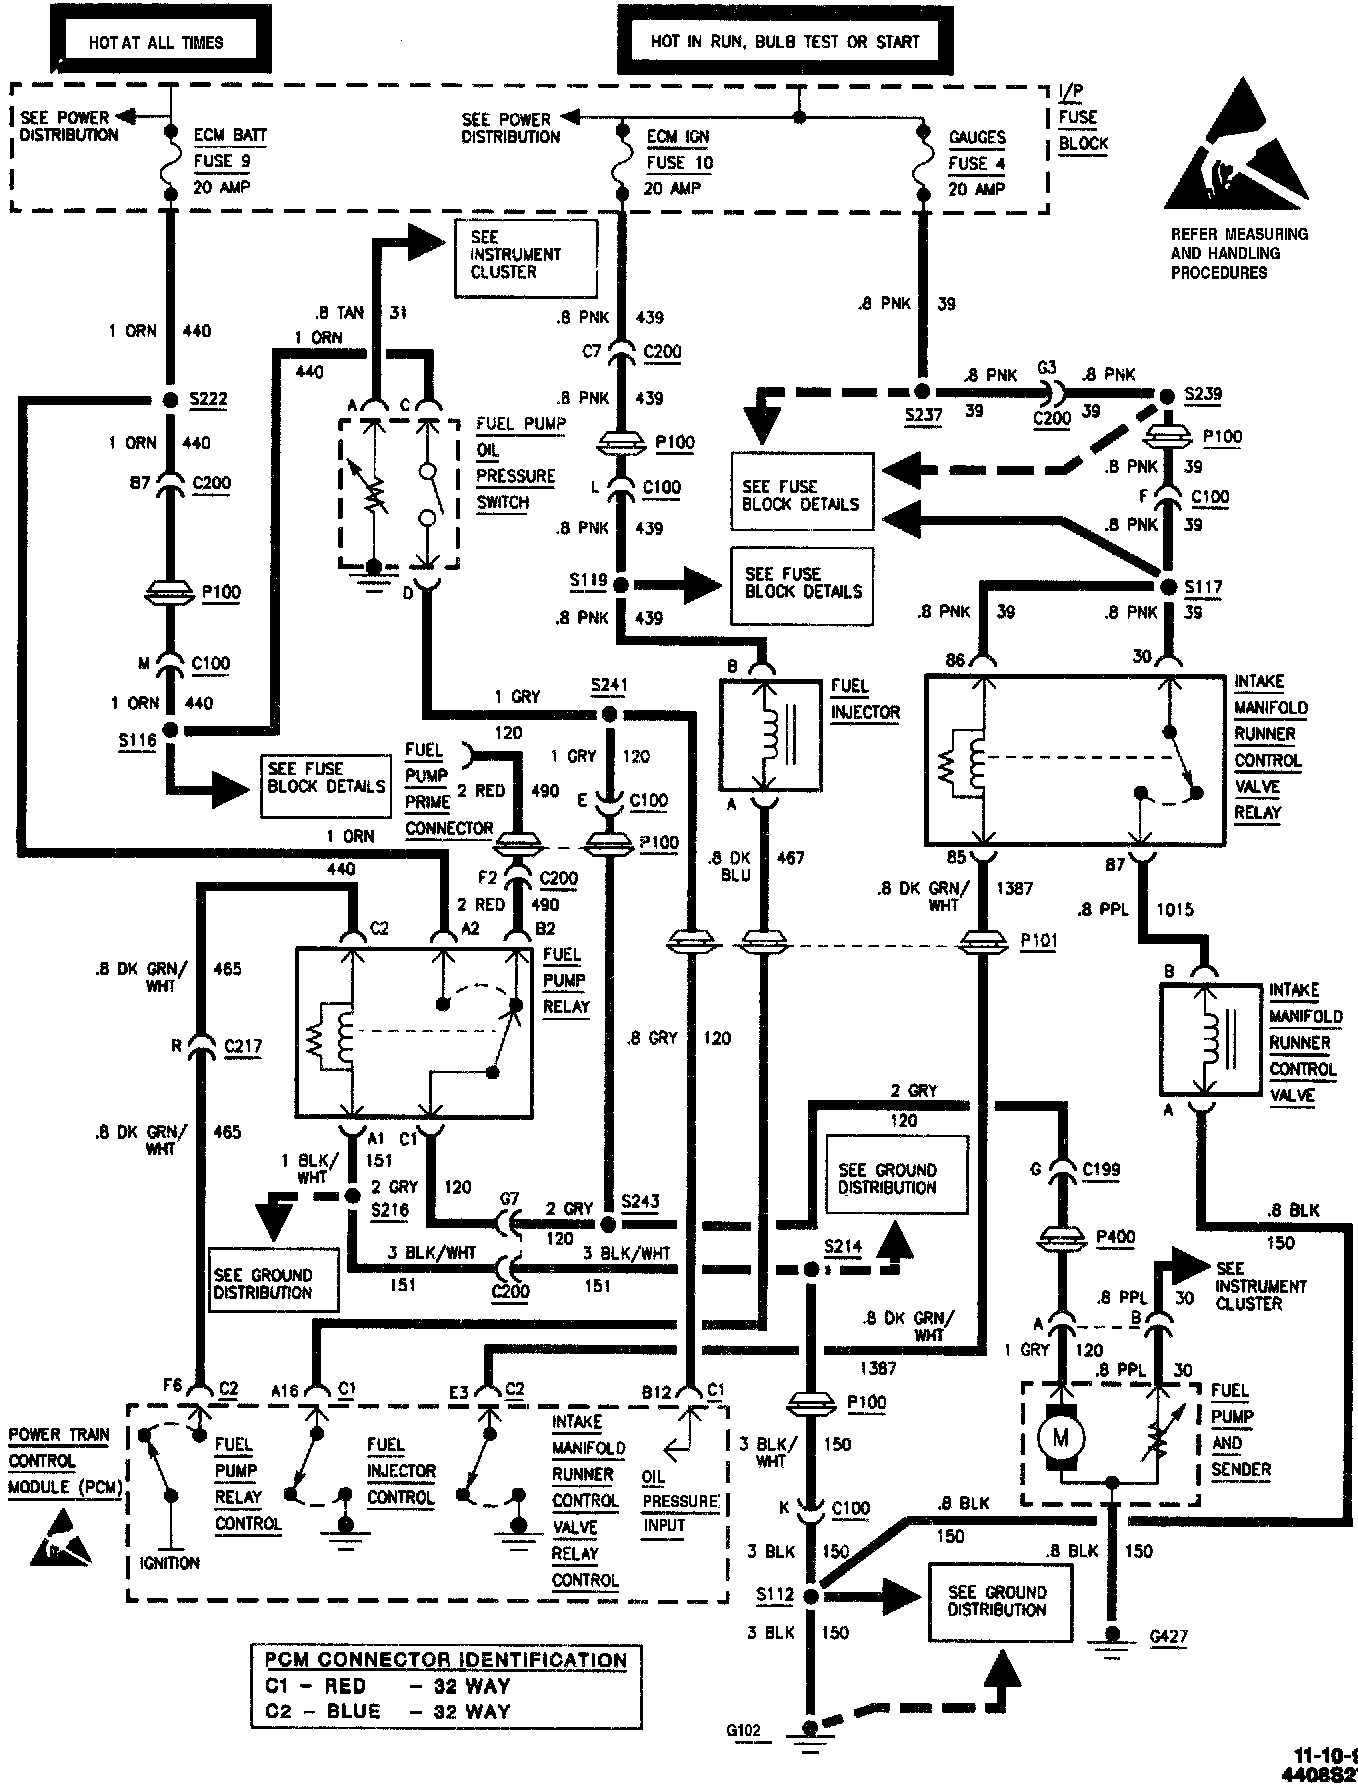 Mack Truck Fuse Diagram Not Lossing Wiring 2012 Schematic 2005 Chevy Trailblazer Fuel Pump Best Site 2010